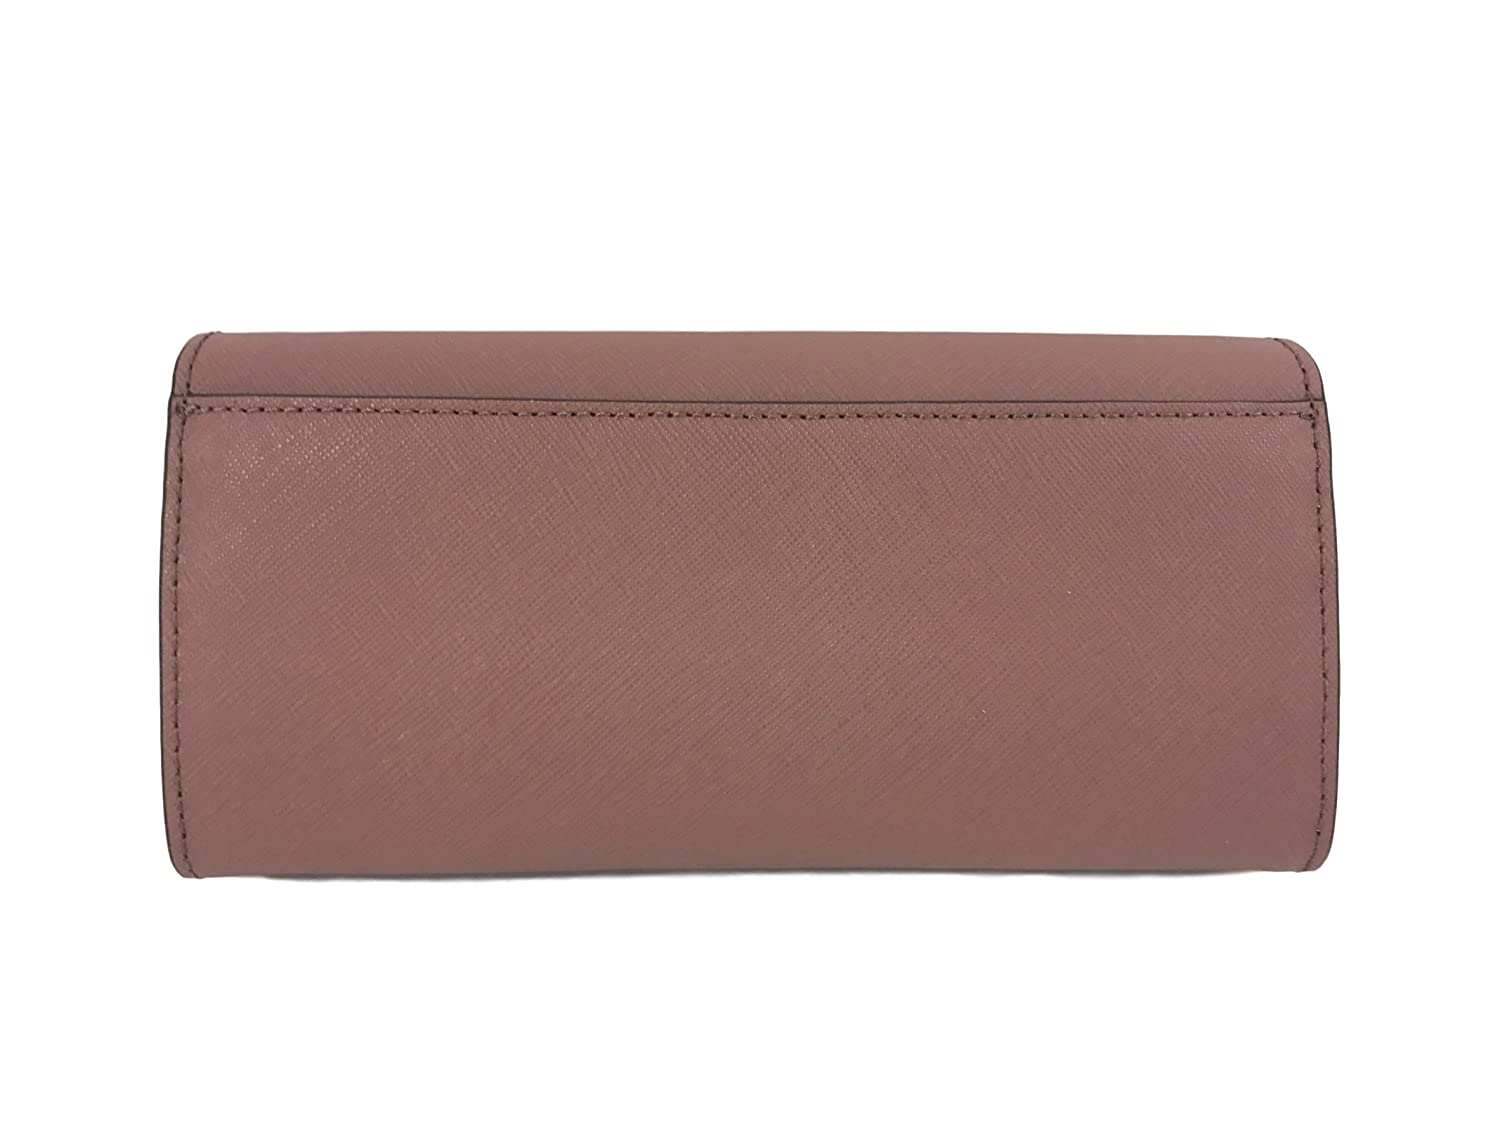 59f4c2370bf4 Amazon.com  Michael Kors Jet Set travel Carryall Leather Clutch wallet in  Dusty Rose  Clothing